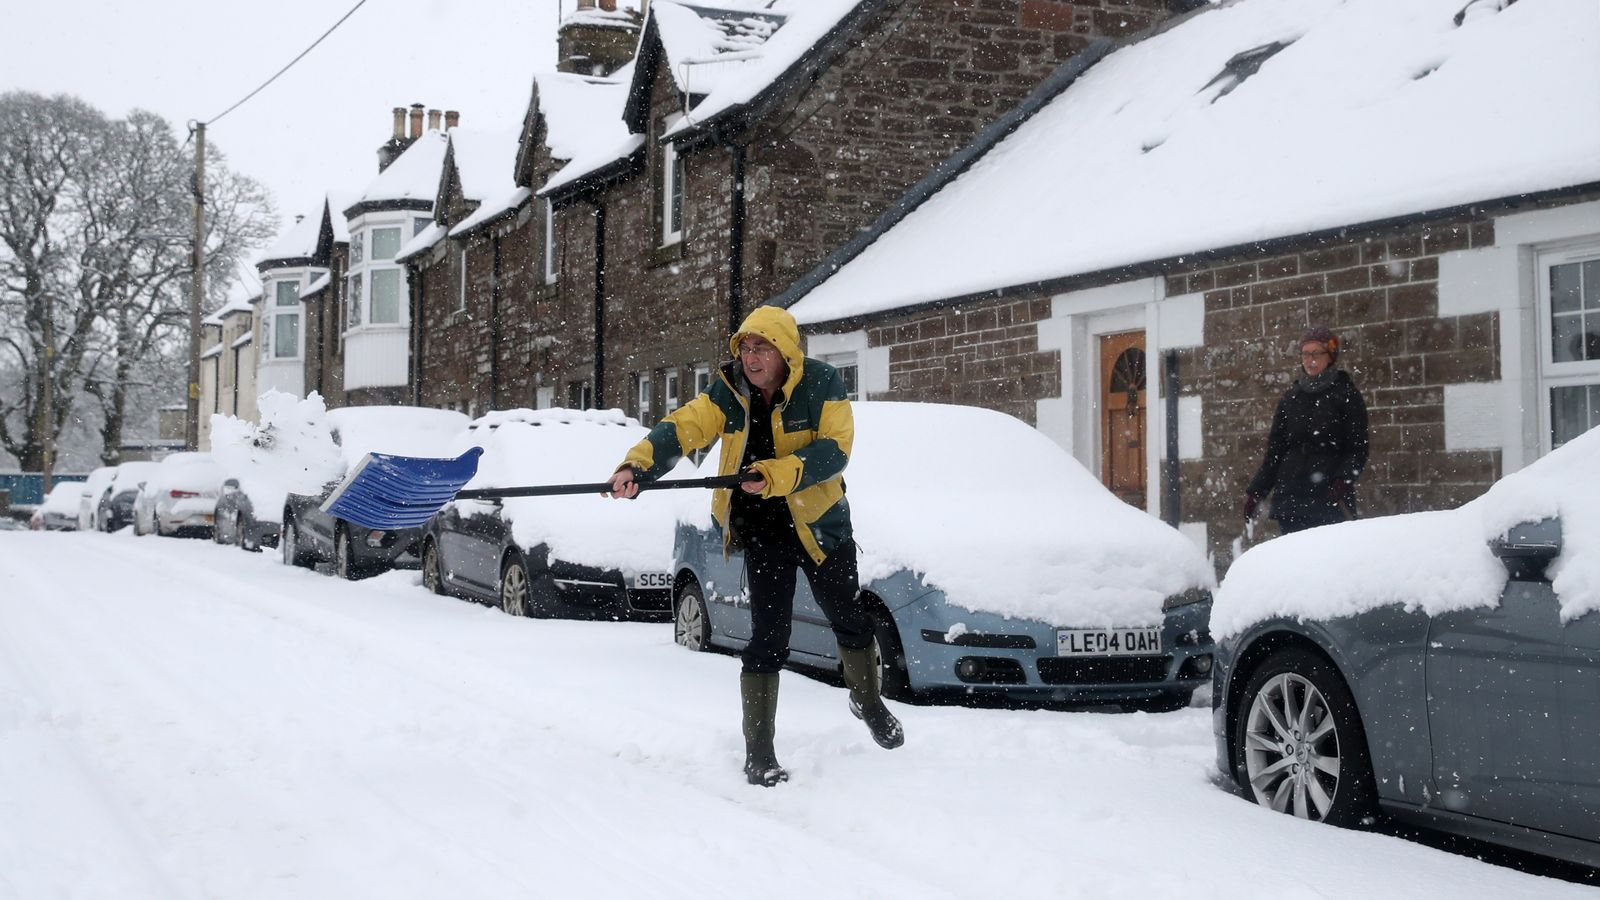 skynews-snow-uk-scotland_5238299.jpg?202